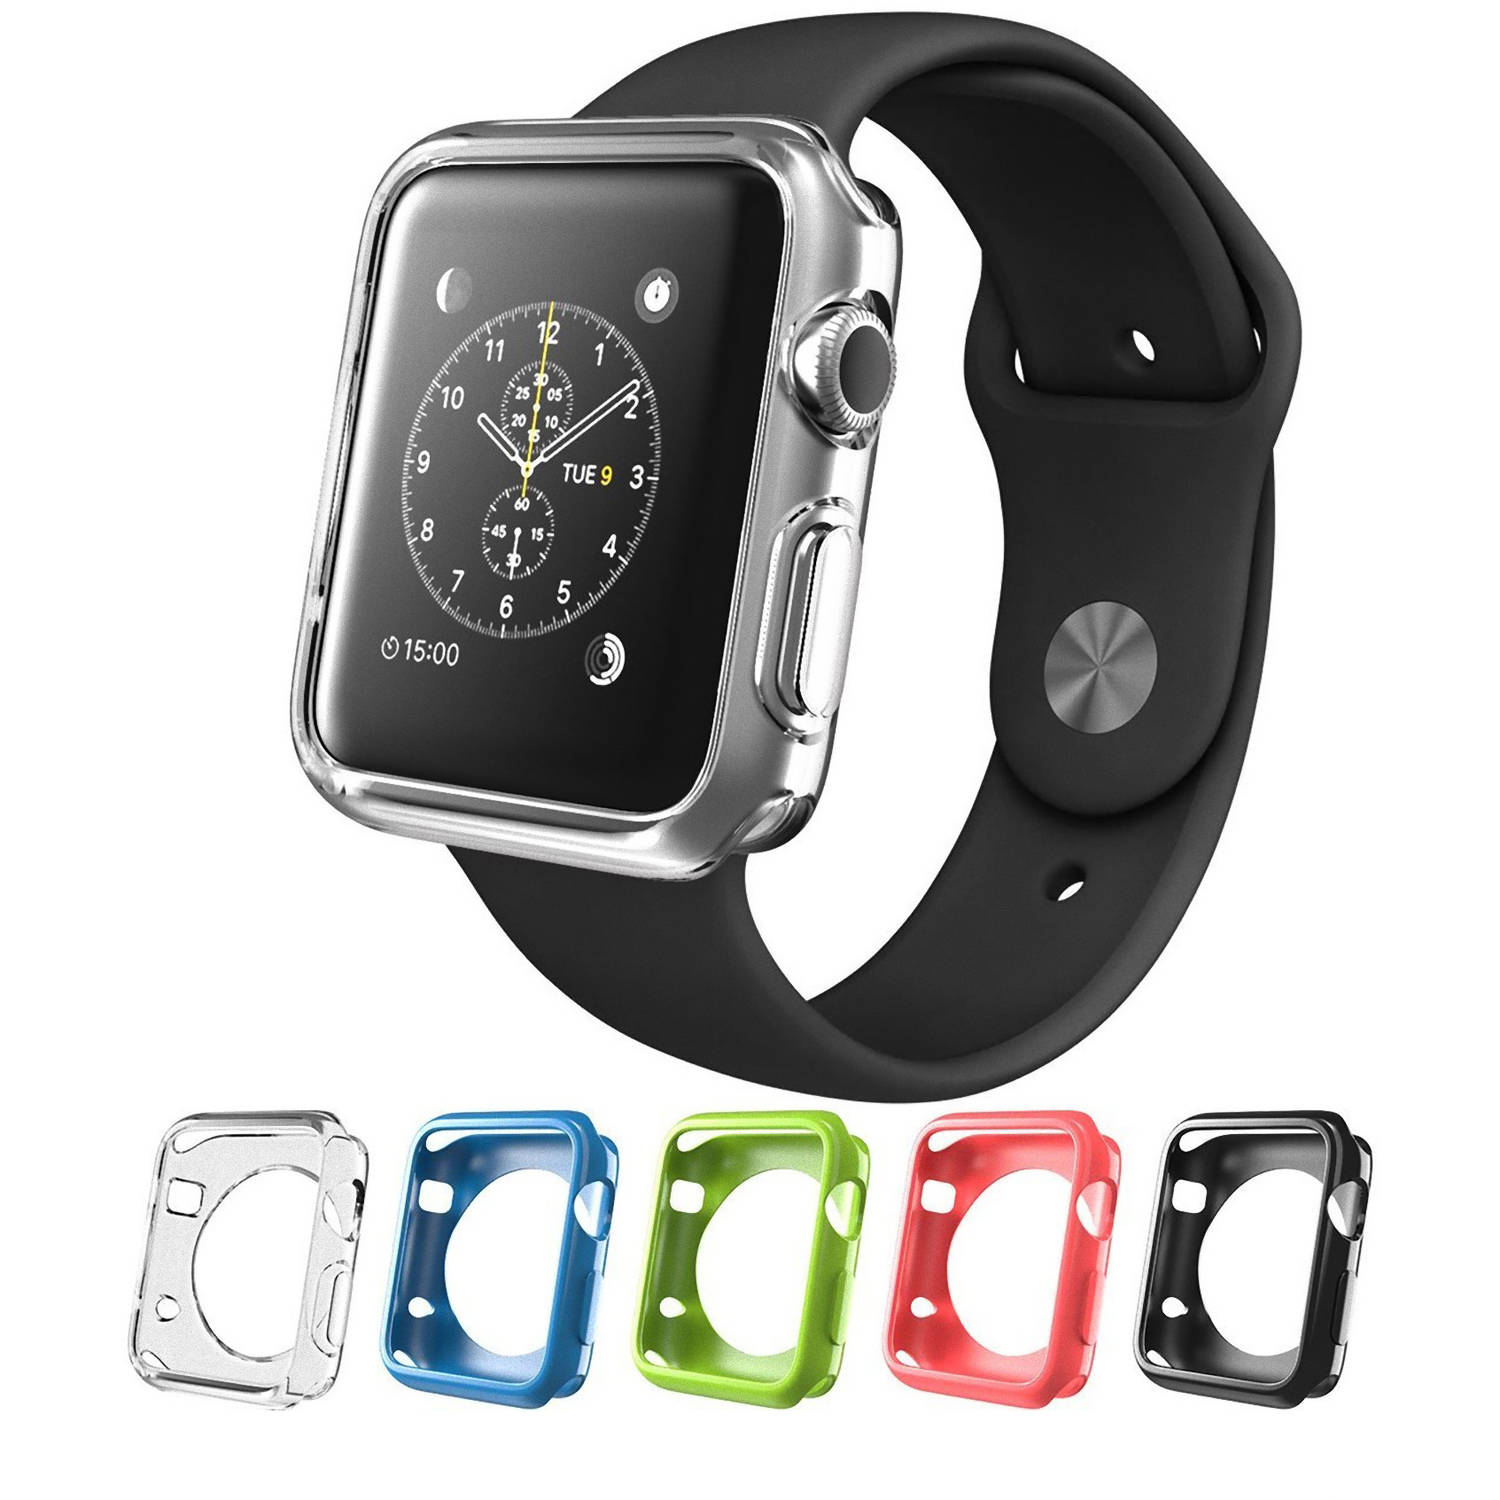 I-Blason iWatch 42mm Protective Cover 5 Pack - Black, Blue, Green, Pink, Clear